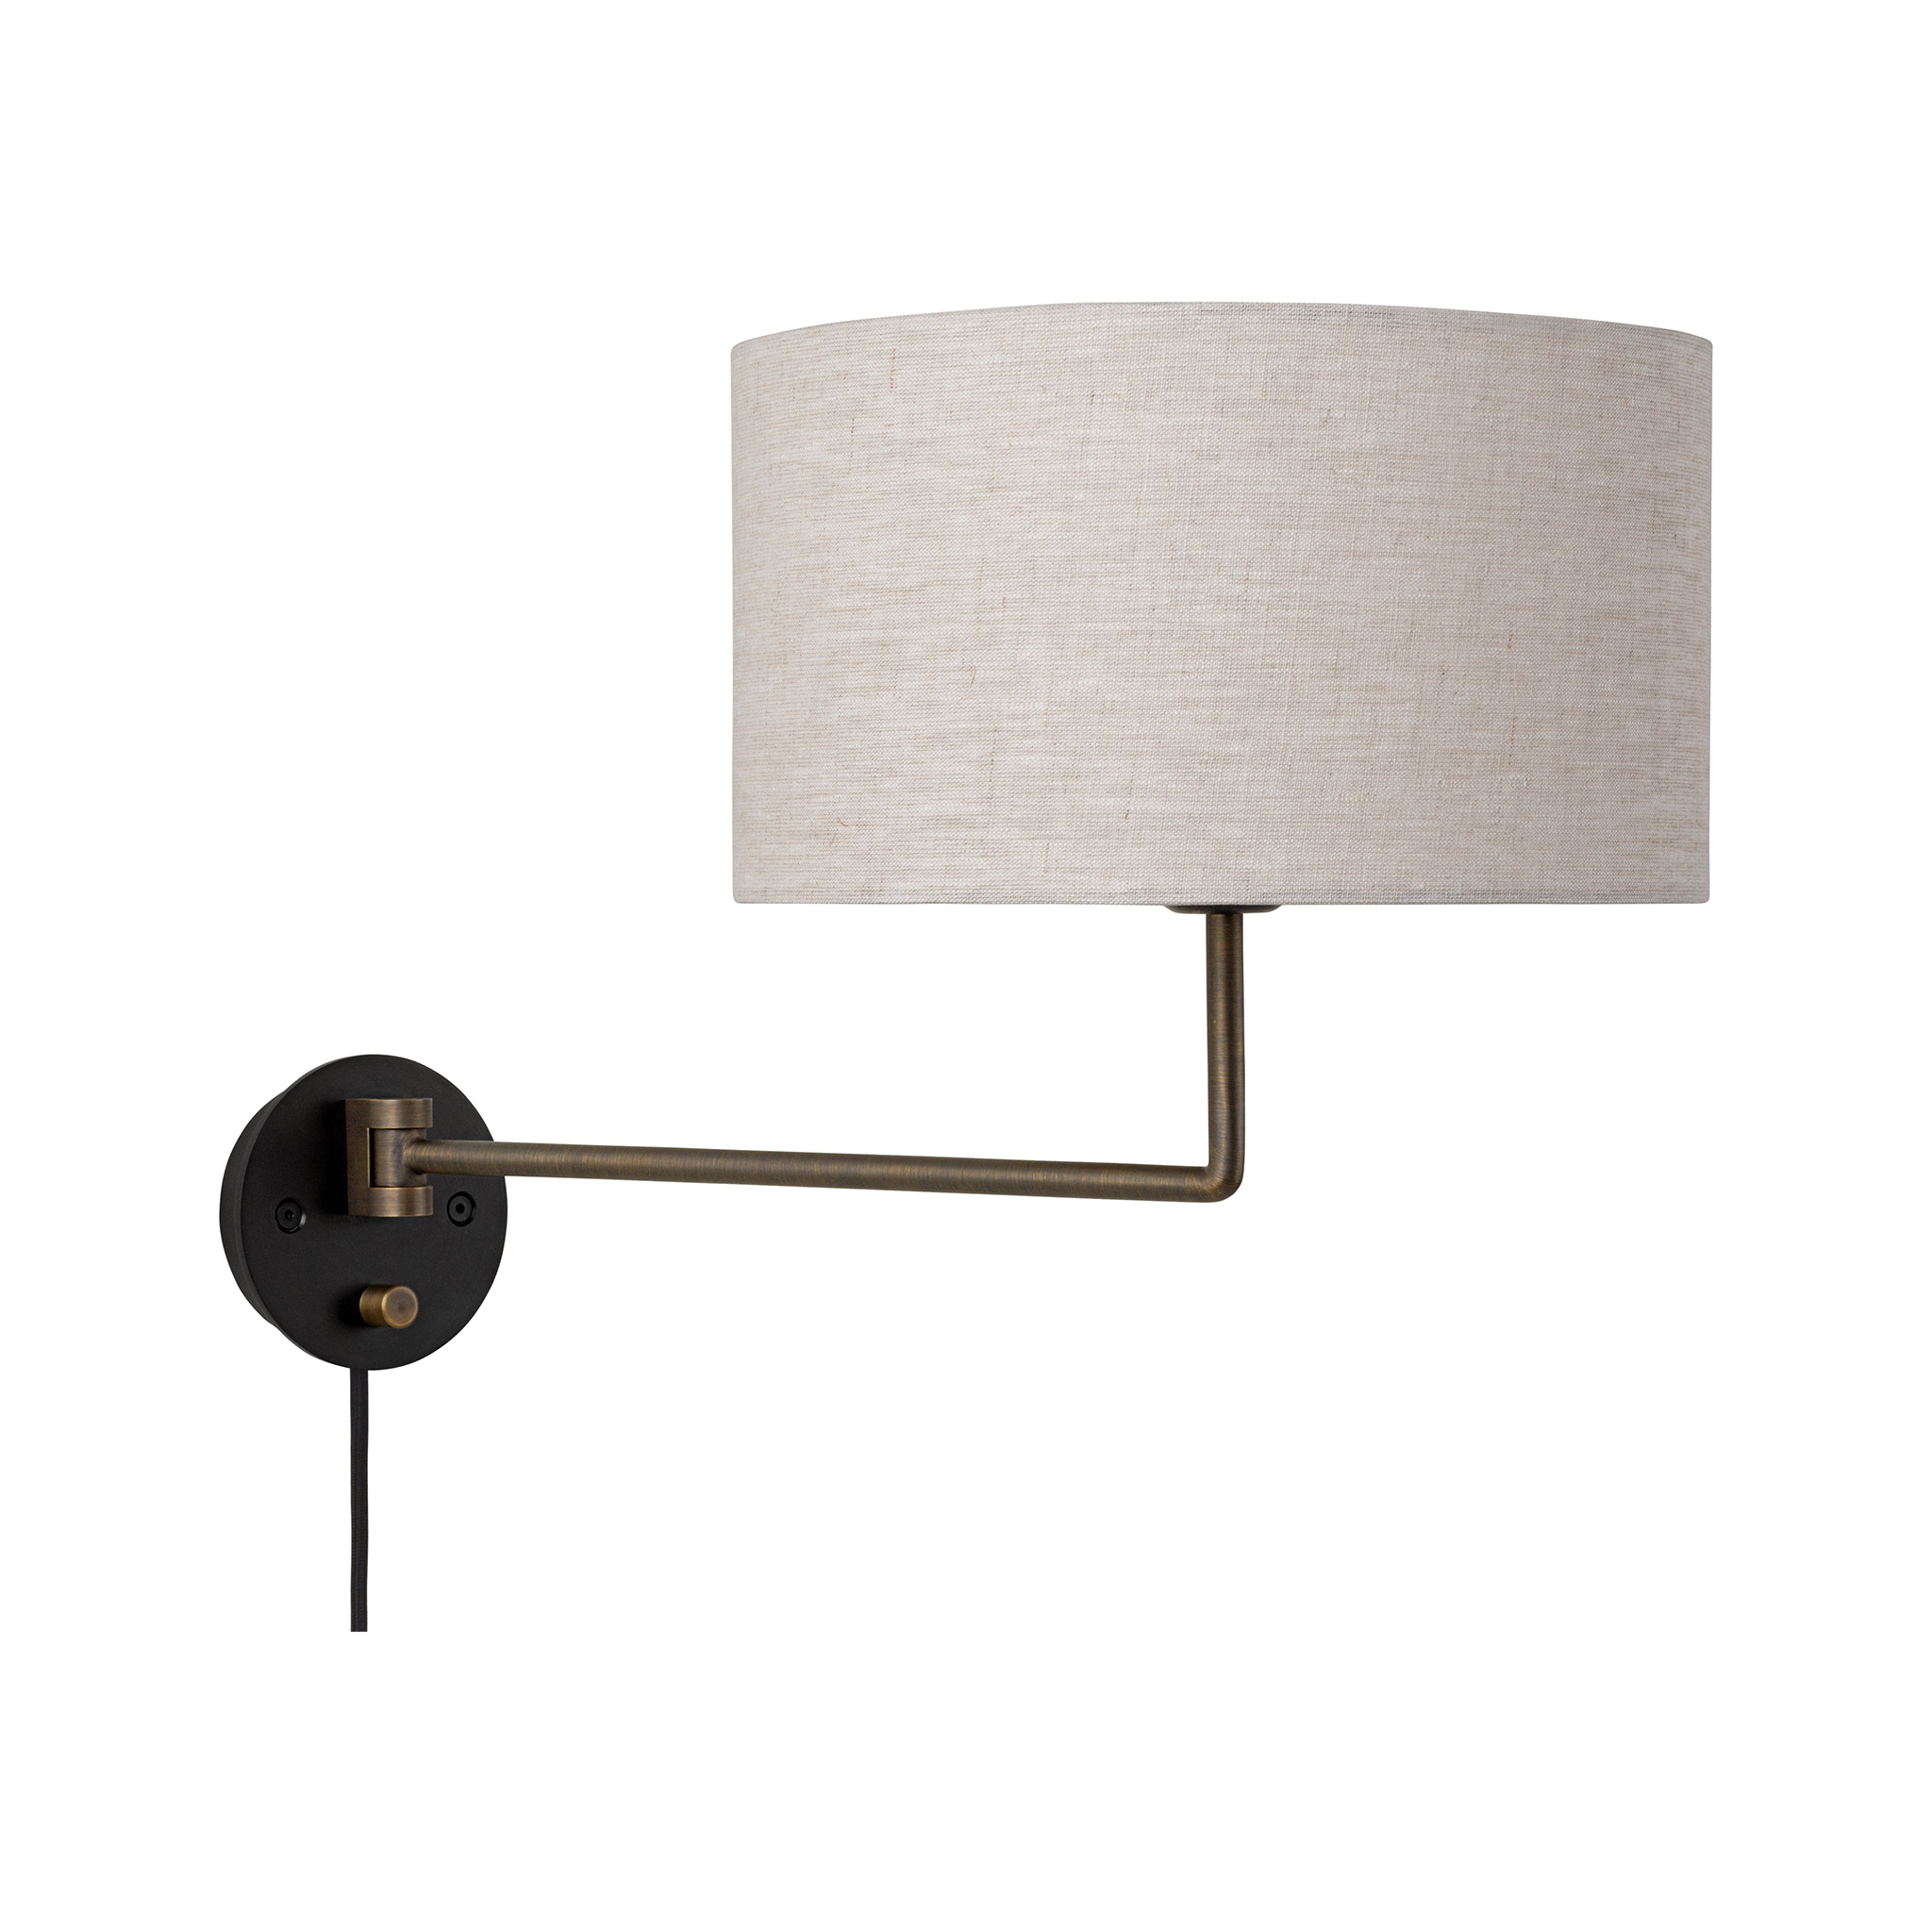 Gravity Bedside Wall Lamp Large by Gubi